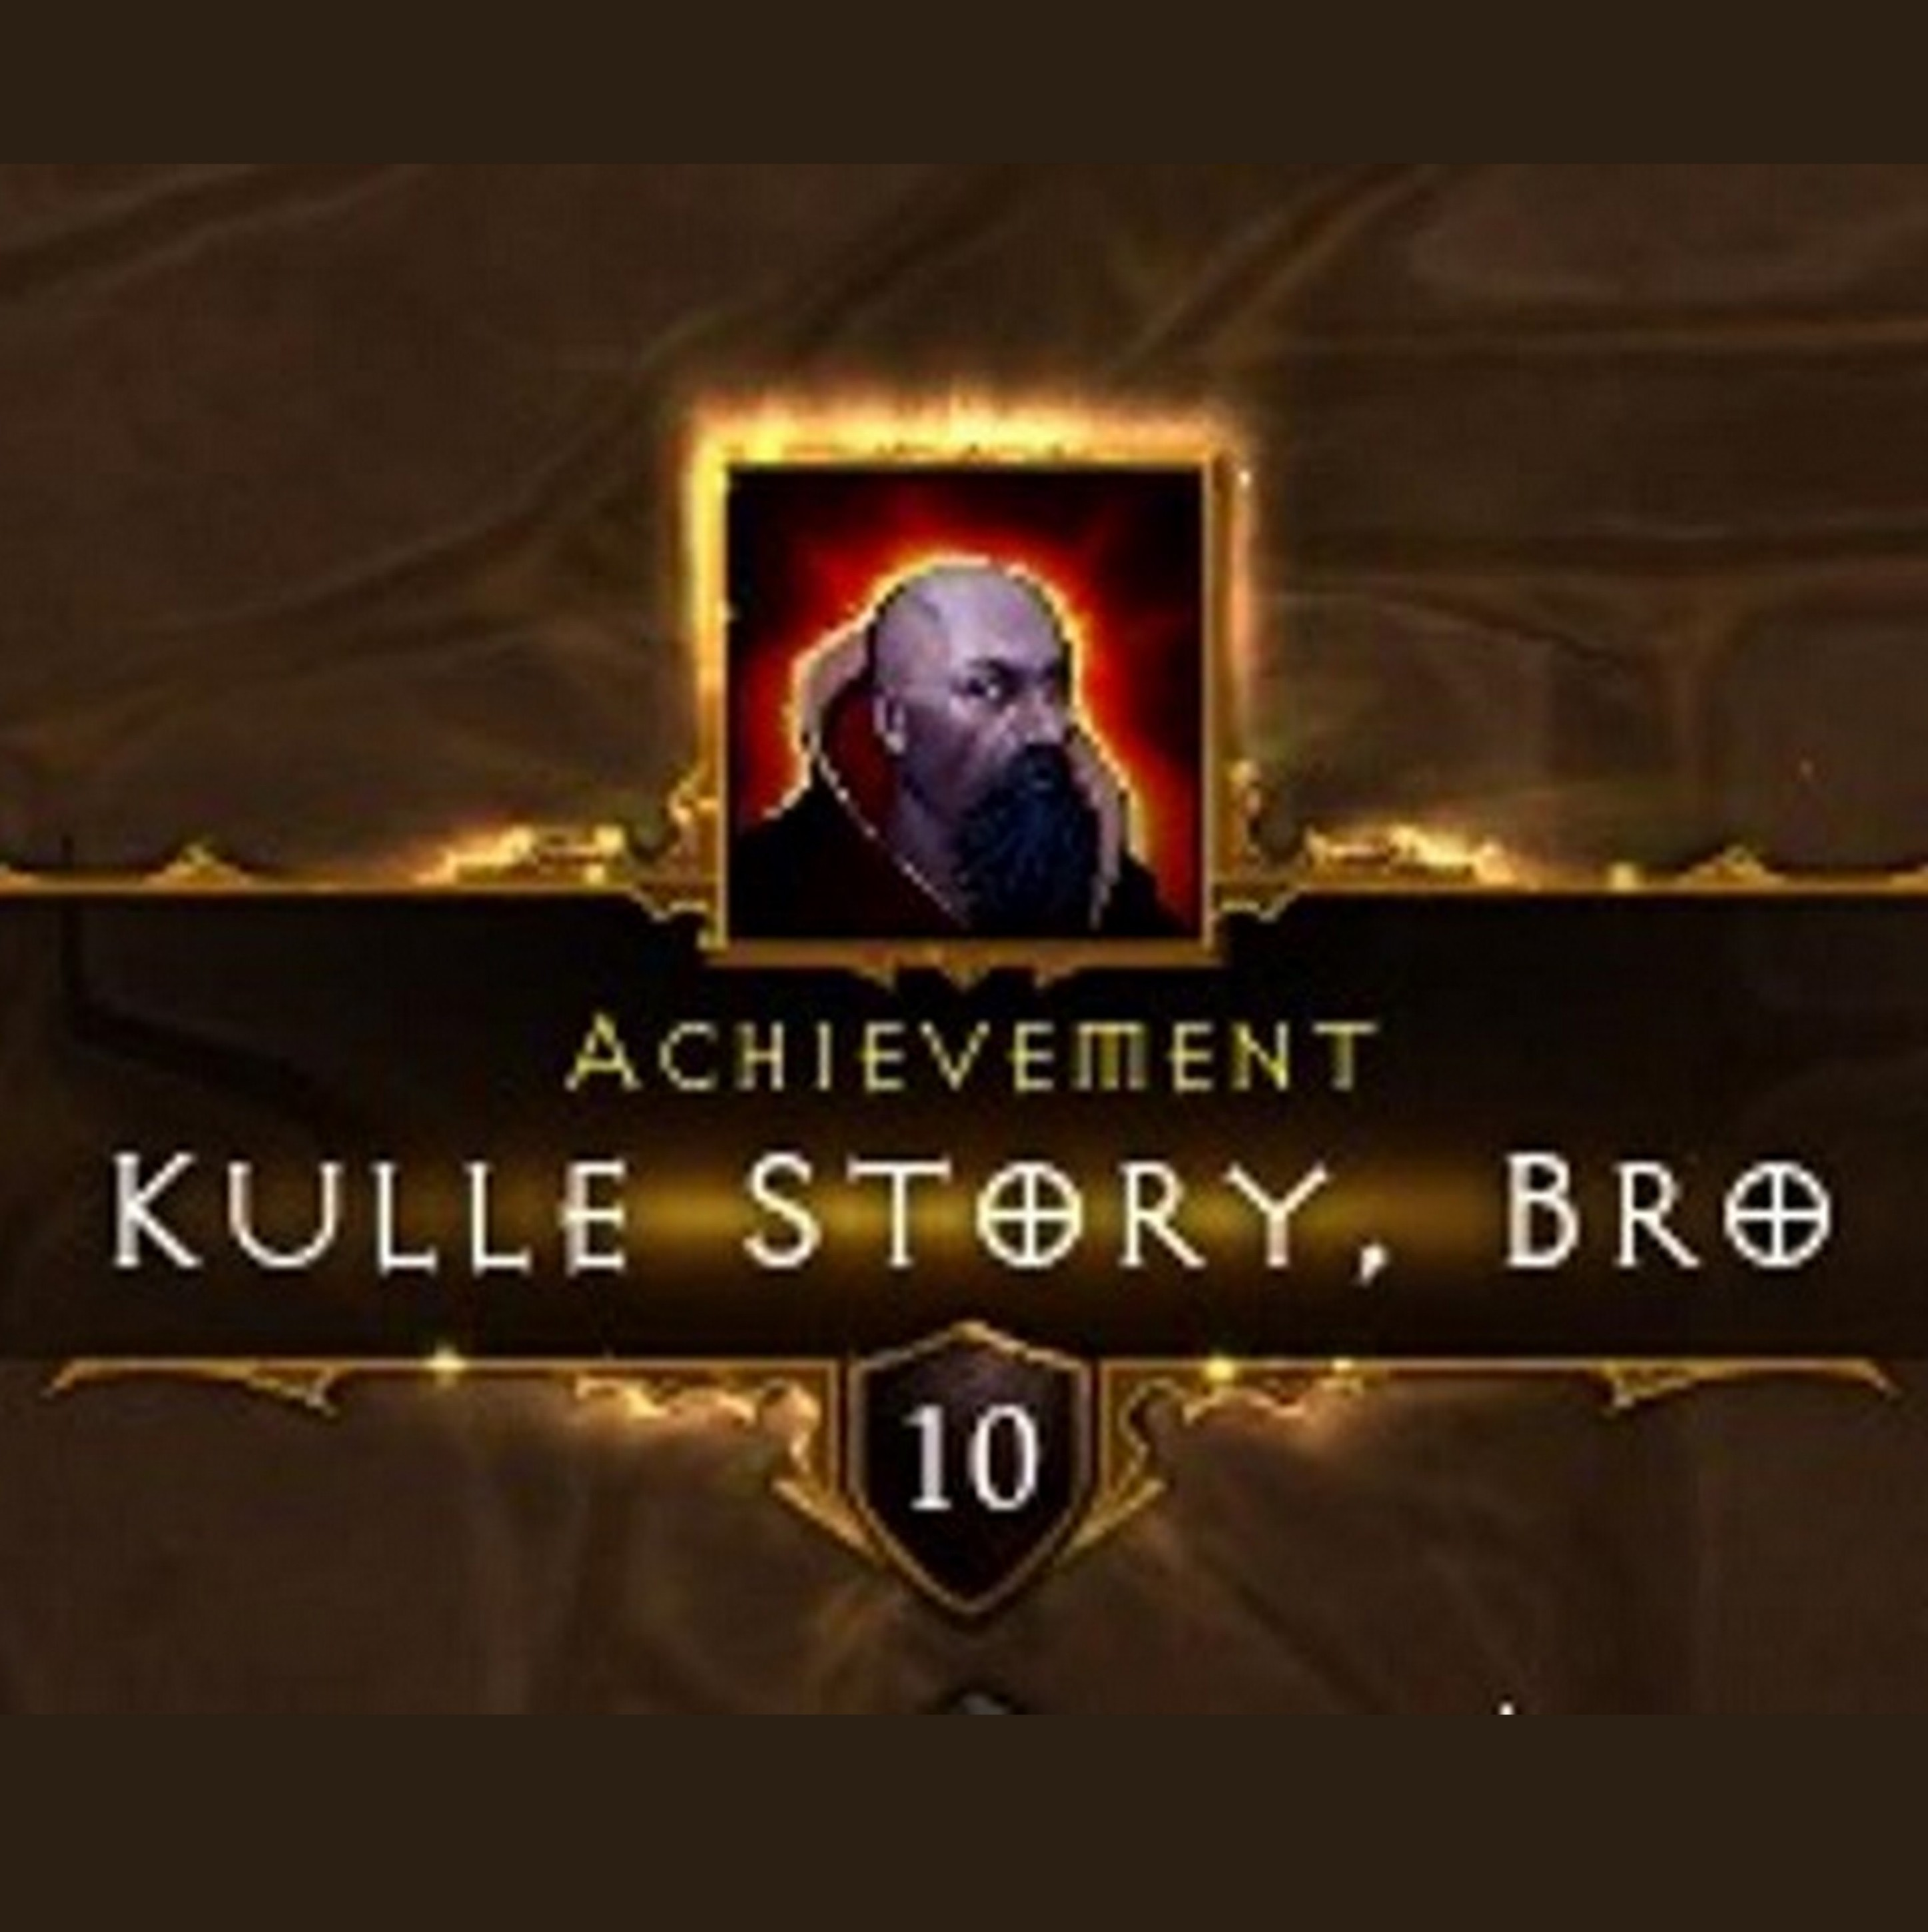 Kulle Story Bro - A Diablo 3 Podcast Episode 32